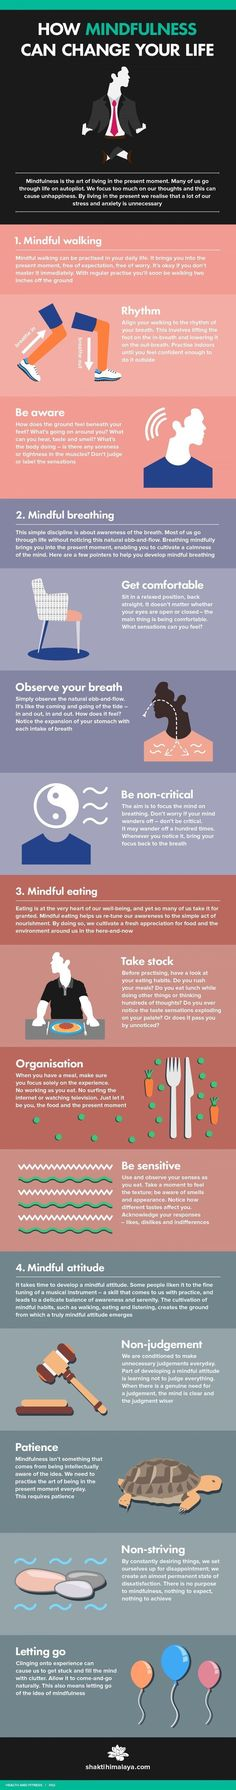 How Mindfulness Can Change Your Life happy life happiness positive emotions mental health self improvement self help emotional health mindfulness mindful